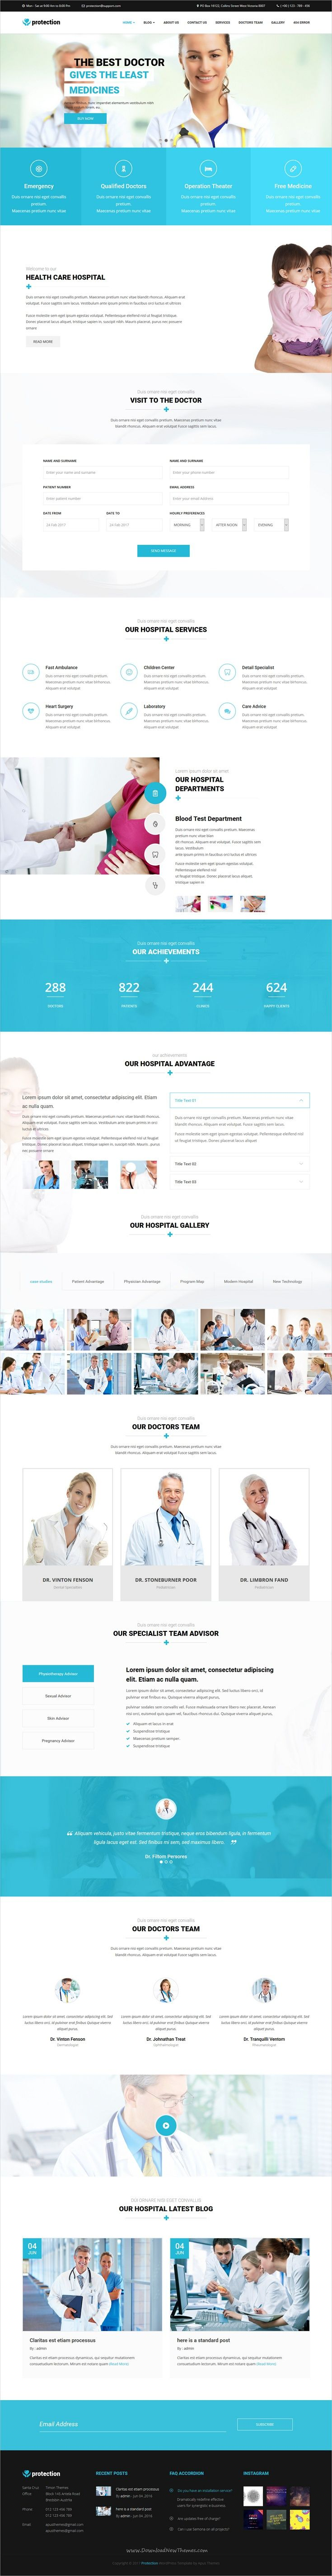 Protection is a wonderful 4in1 responsive #WordPress theme for #medical, health, #cosmetic #clinic or plastic surgery pharmaceutical websites download now➩  https://themeforest.net/item/protection-medical-health-responsive-wordpress-theme/18608984?ref=Datasata